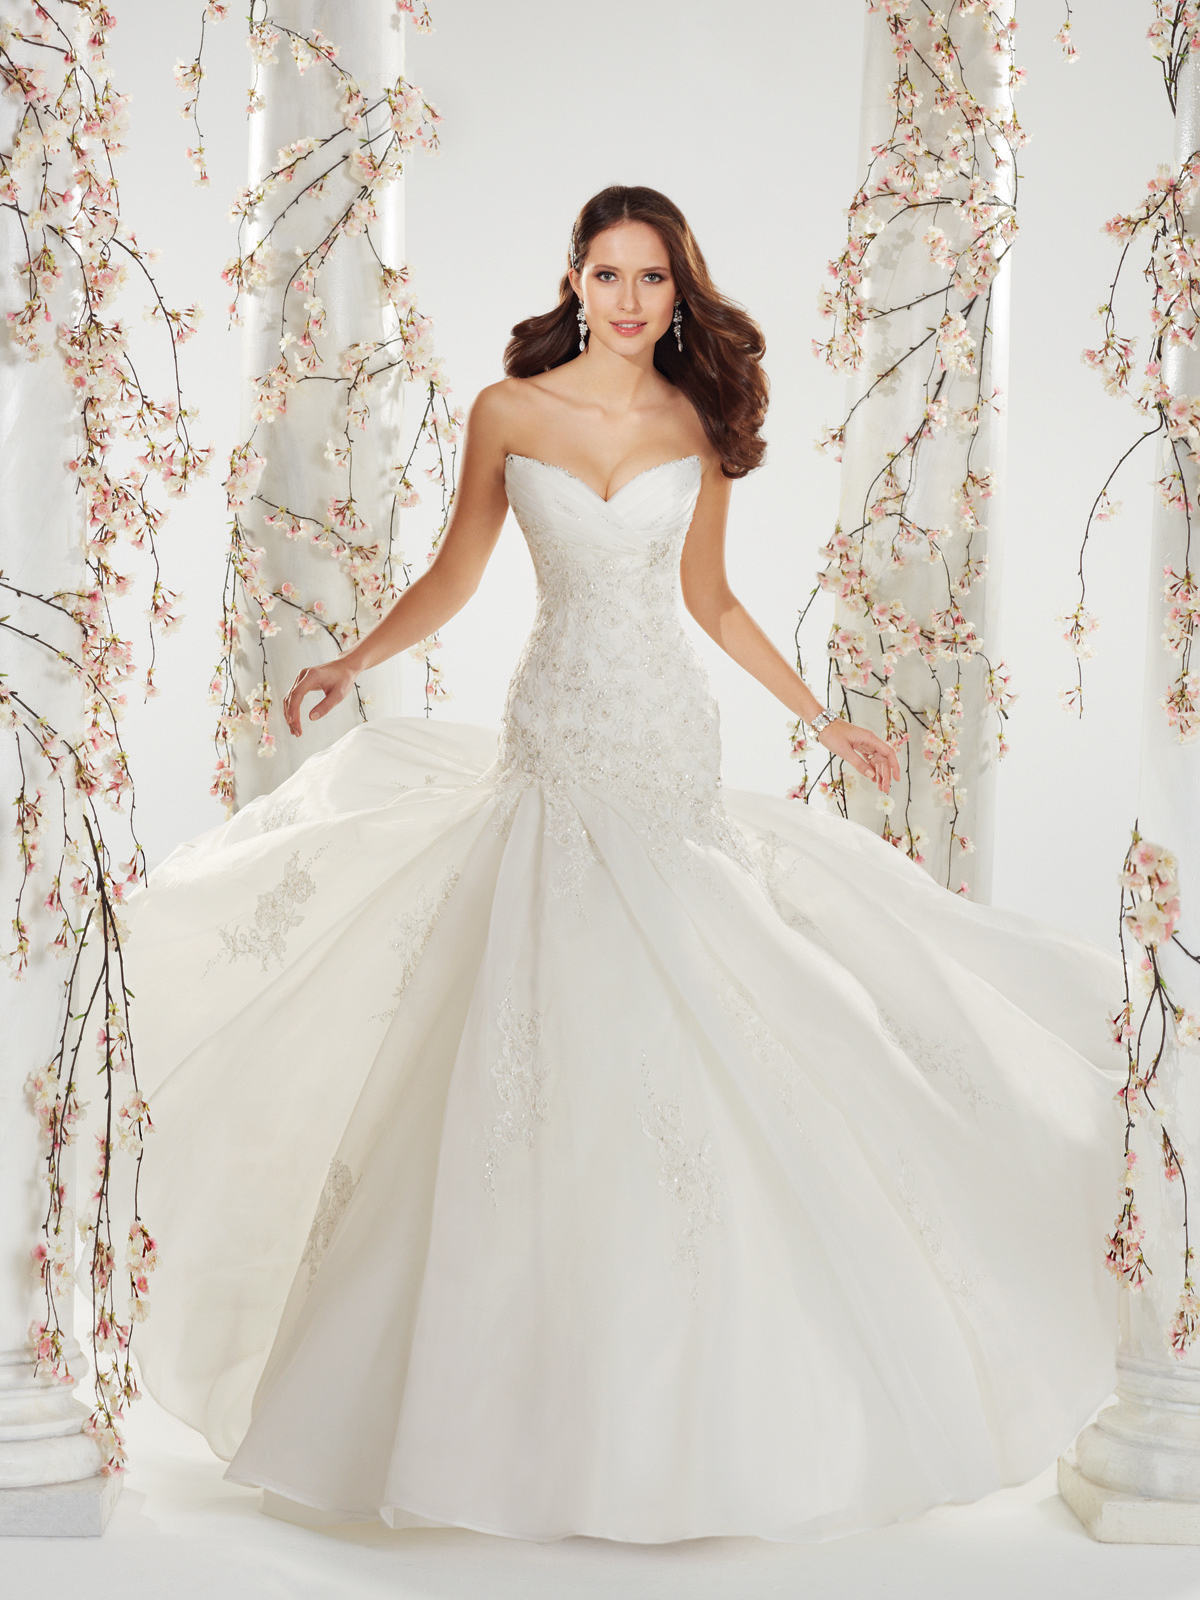 Wedding Dresses Albuquerque | Ann Matthews Bridal Albuquerque Wedding Dresses